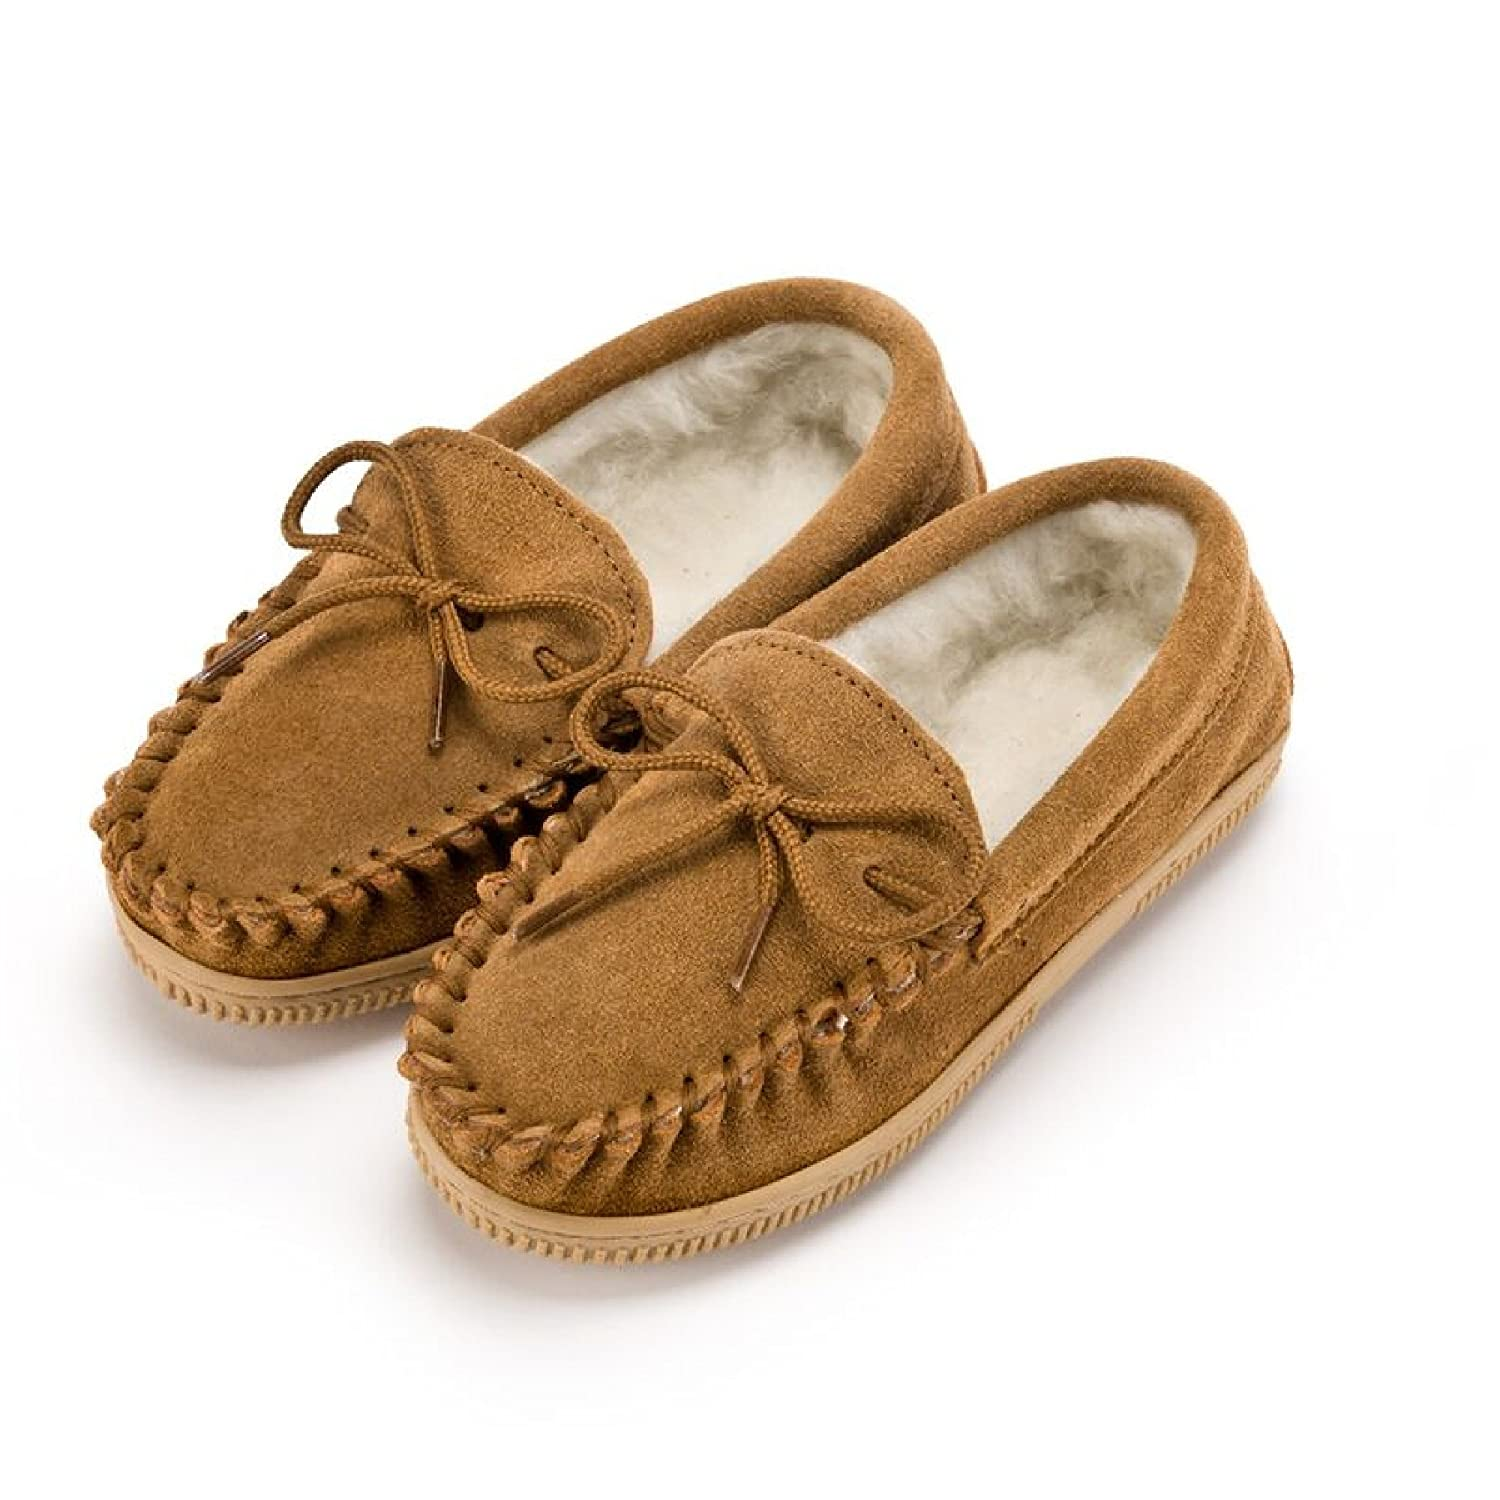 Eastern Counties Leather Childrens/Kids Wool-Blend Lined Moccasin Slippers